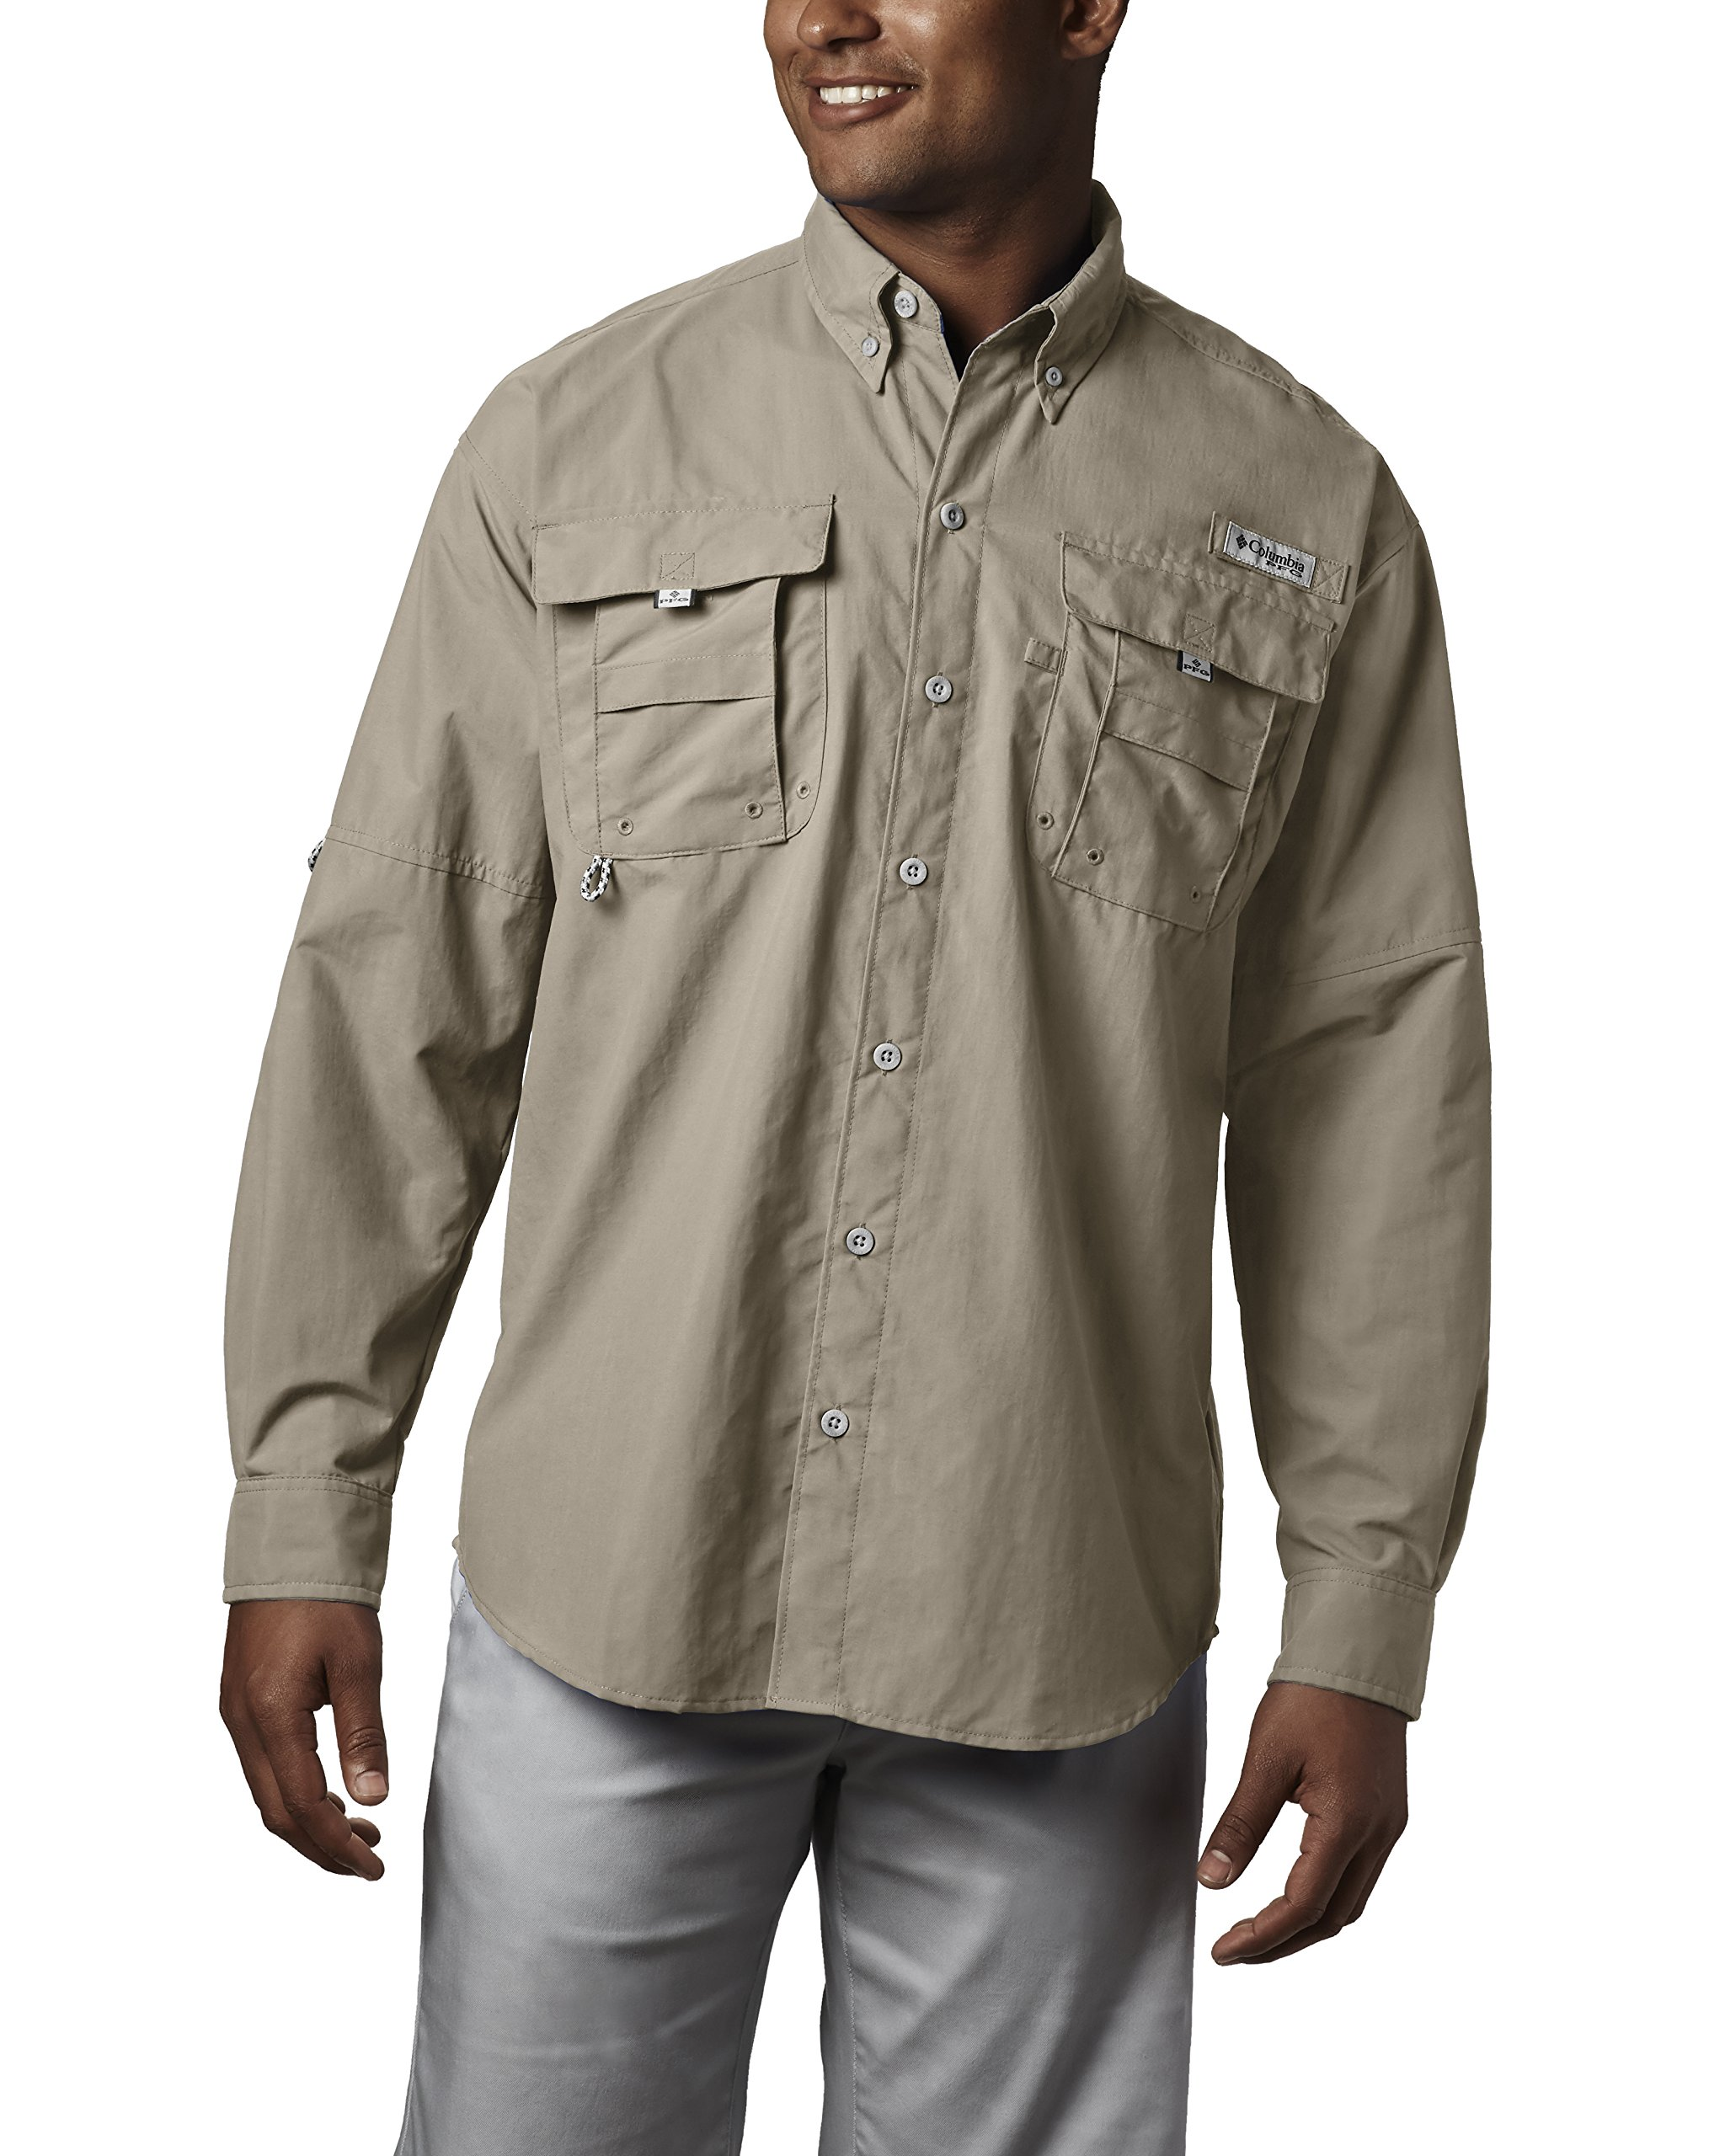 Columbia Men's Bahama II Long Sleeve Shirt, Fossil, Large